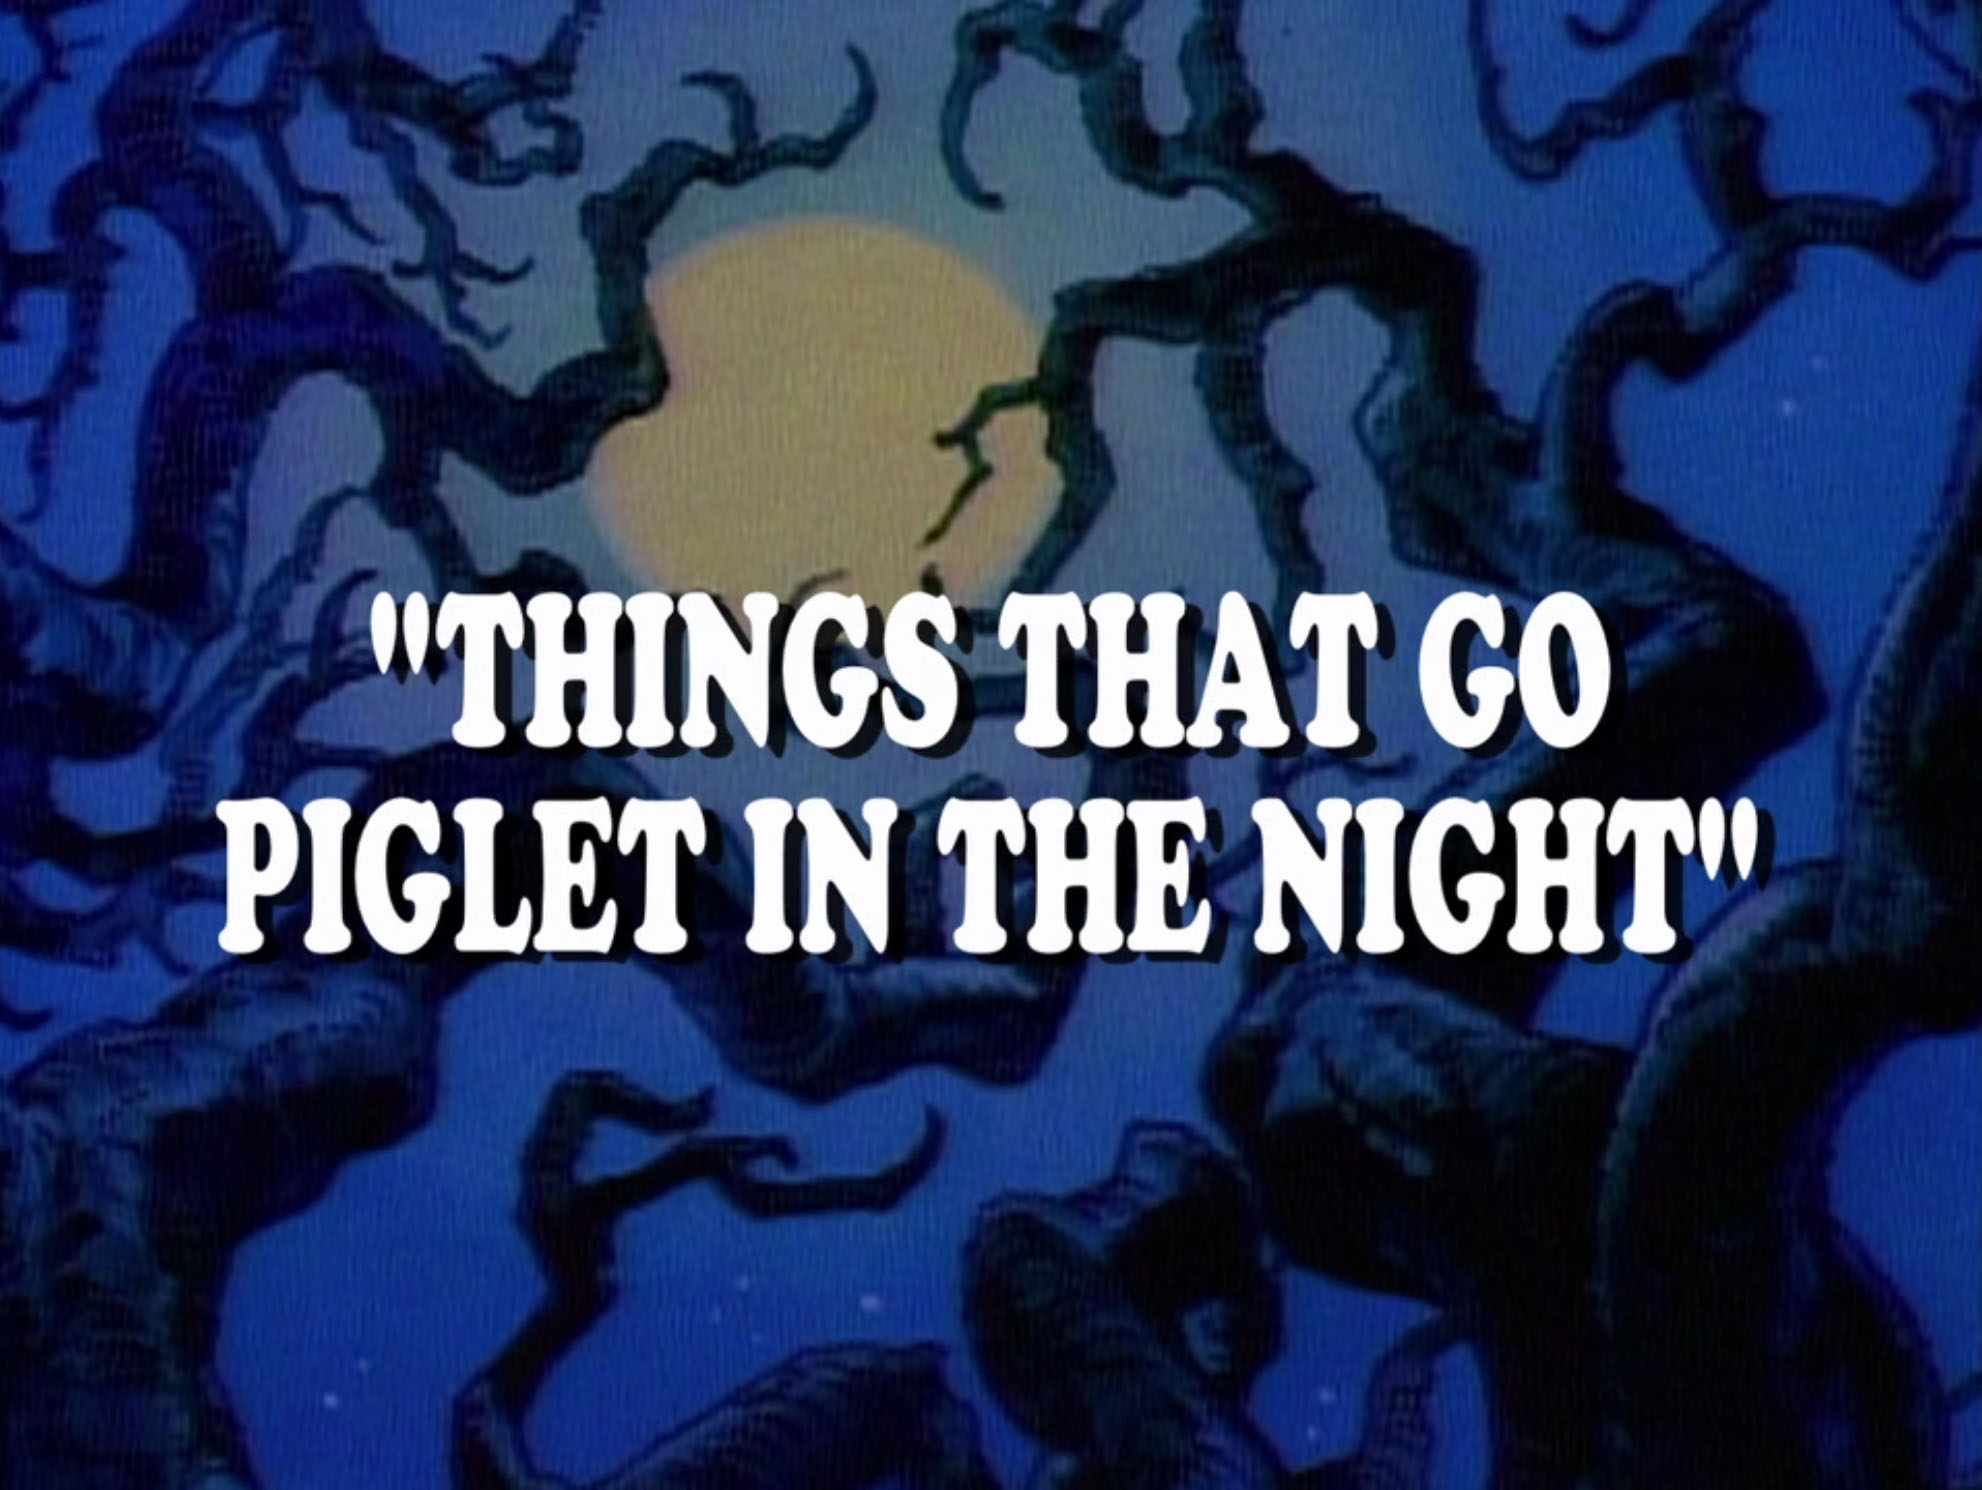 File:Things That Go Piglet in the Night.jpg